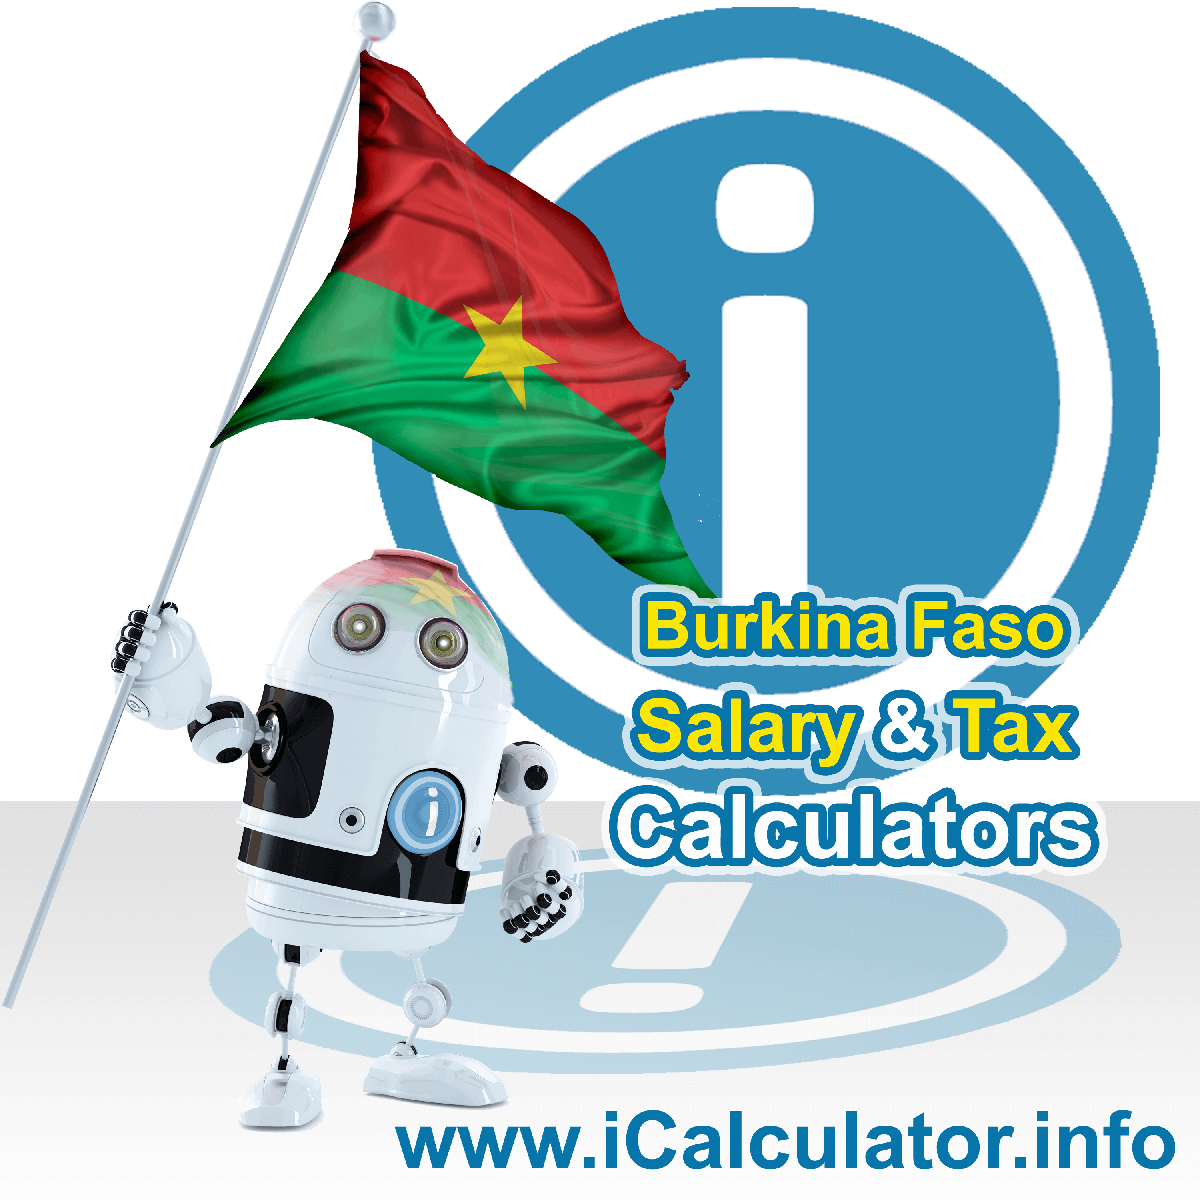 Burkina Faso Income Tax Calculator. This image shows the Burkina Faso flag and information relating to the tax formula for the Burkina Faso Tax Calculator